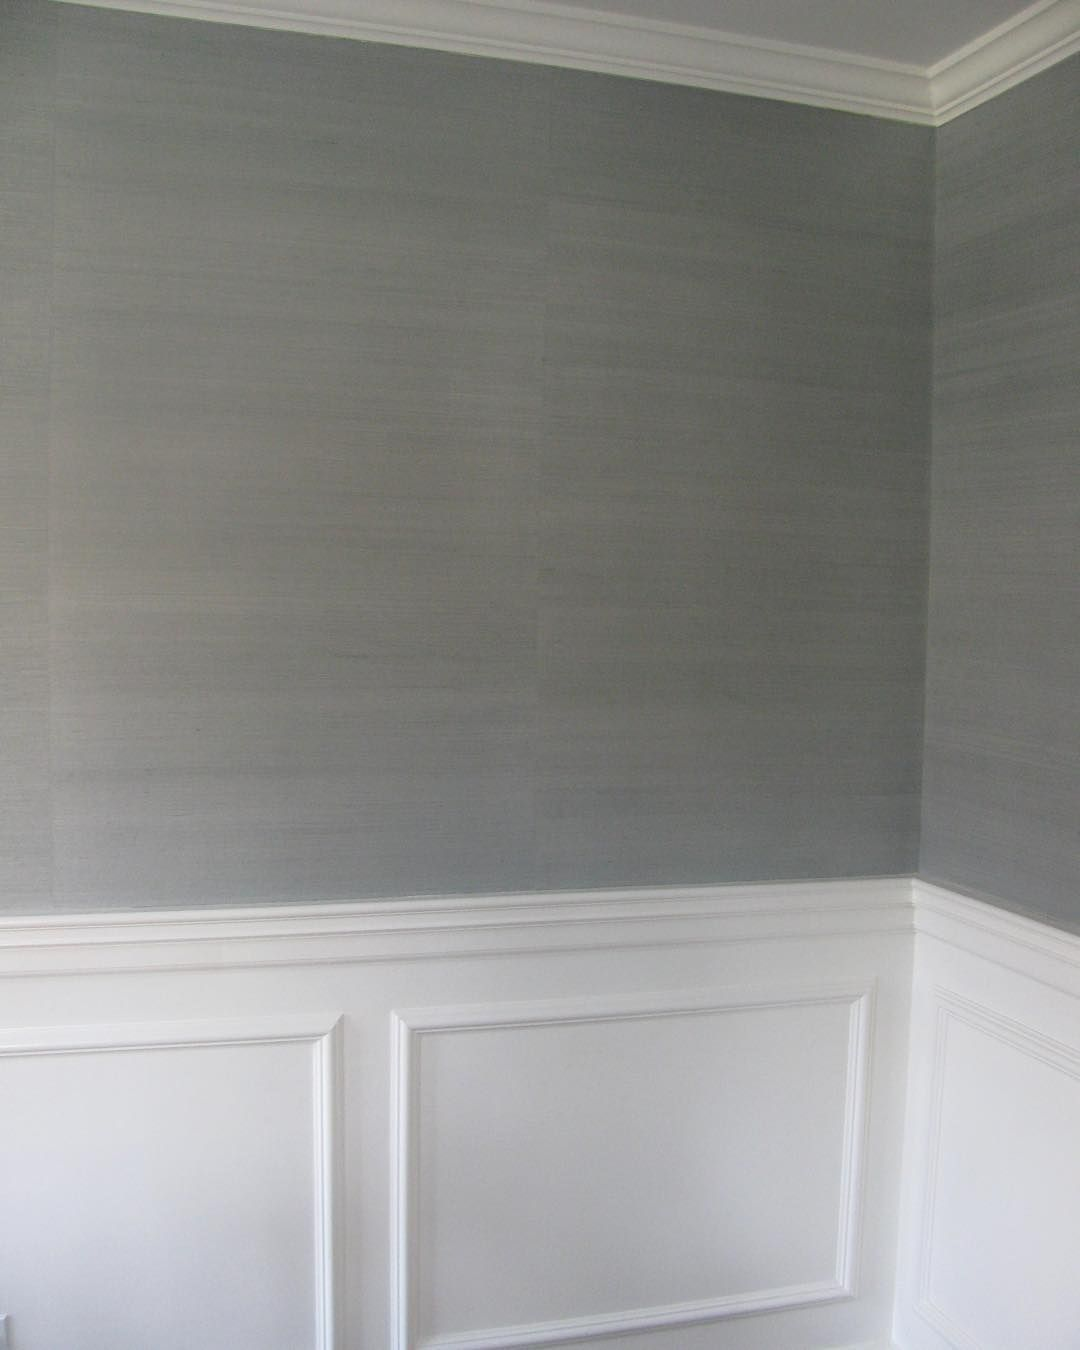 Painting over grasscloth wallpaper -  Dinning Room Grasscloth Wallpaper Thibaut_1886 Shang Extra Fine Sisal In Slate Love The